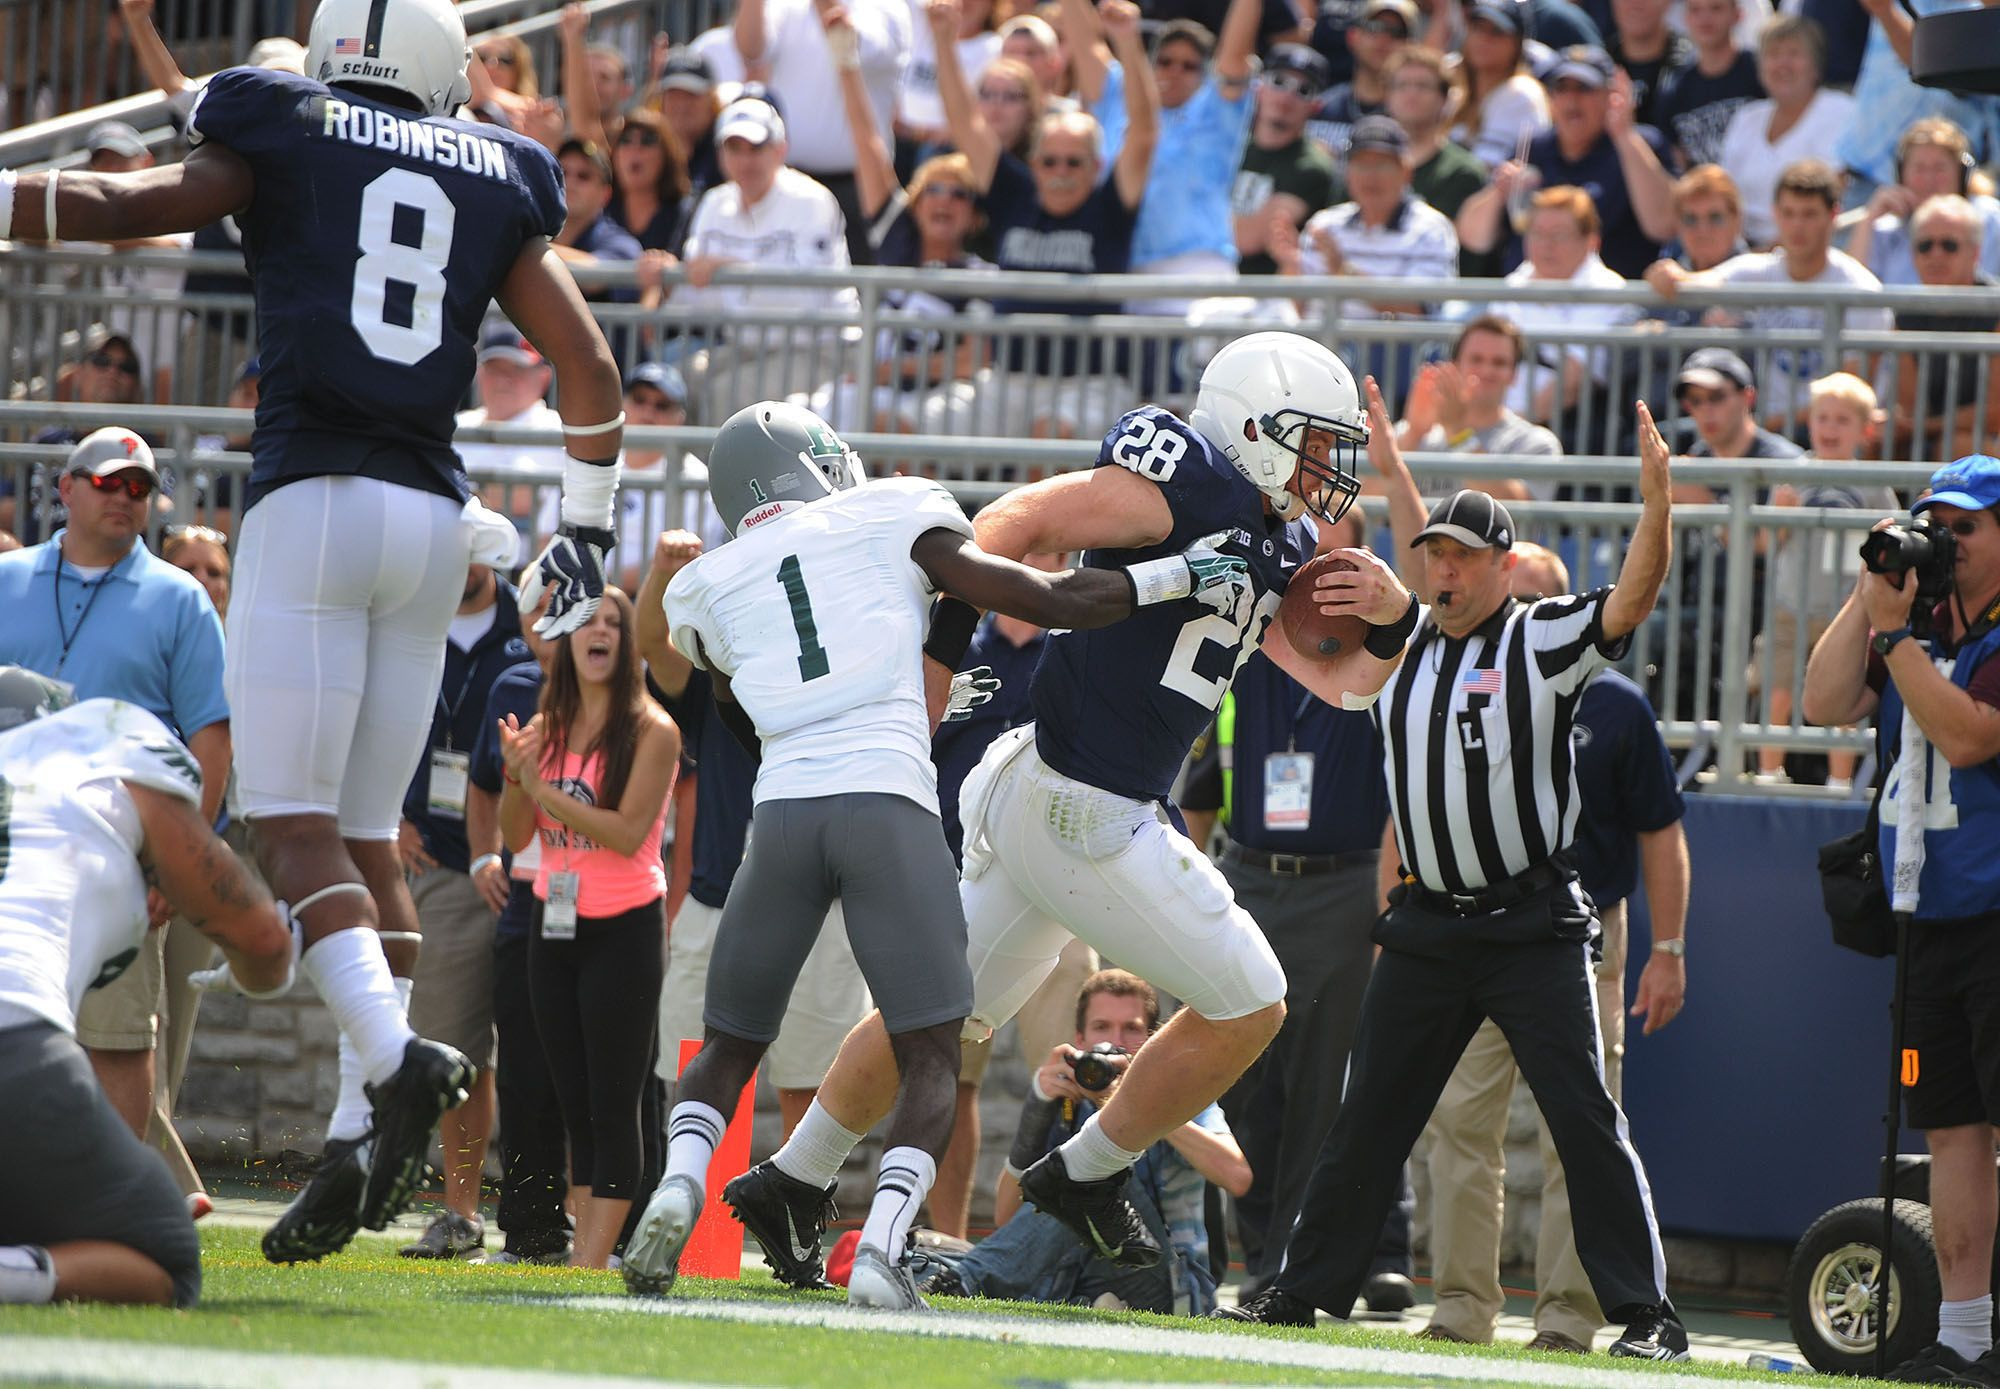 PENN STATE – FOOTBALL 2013 – TAILBACK Zach Zwinak races around left end for State's third touchdown Saturday, and Nittany Lion mascot did 24 one-armed pushups.  Penn State vs. Eastern Michigan, September 6, 2013. The weatherman dialed up a perfect day for football in Happy Valley Saturday, and the Nittany Lions did their part to make fans in Beaver Stadium enjoy the delightfully warm, sunny afternoon by running through, over and around Eastern Michigan, 45-7.